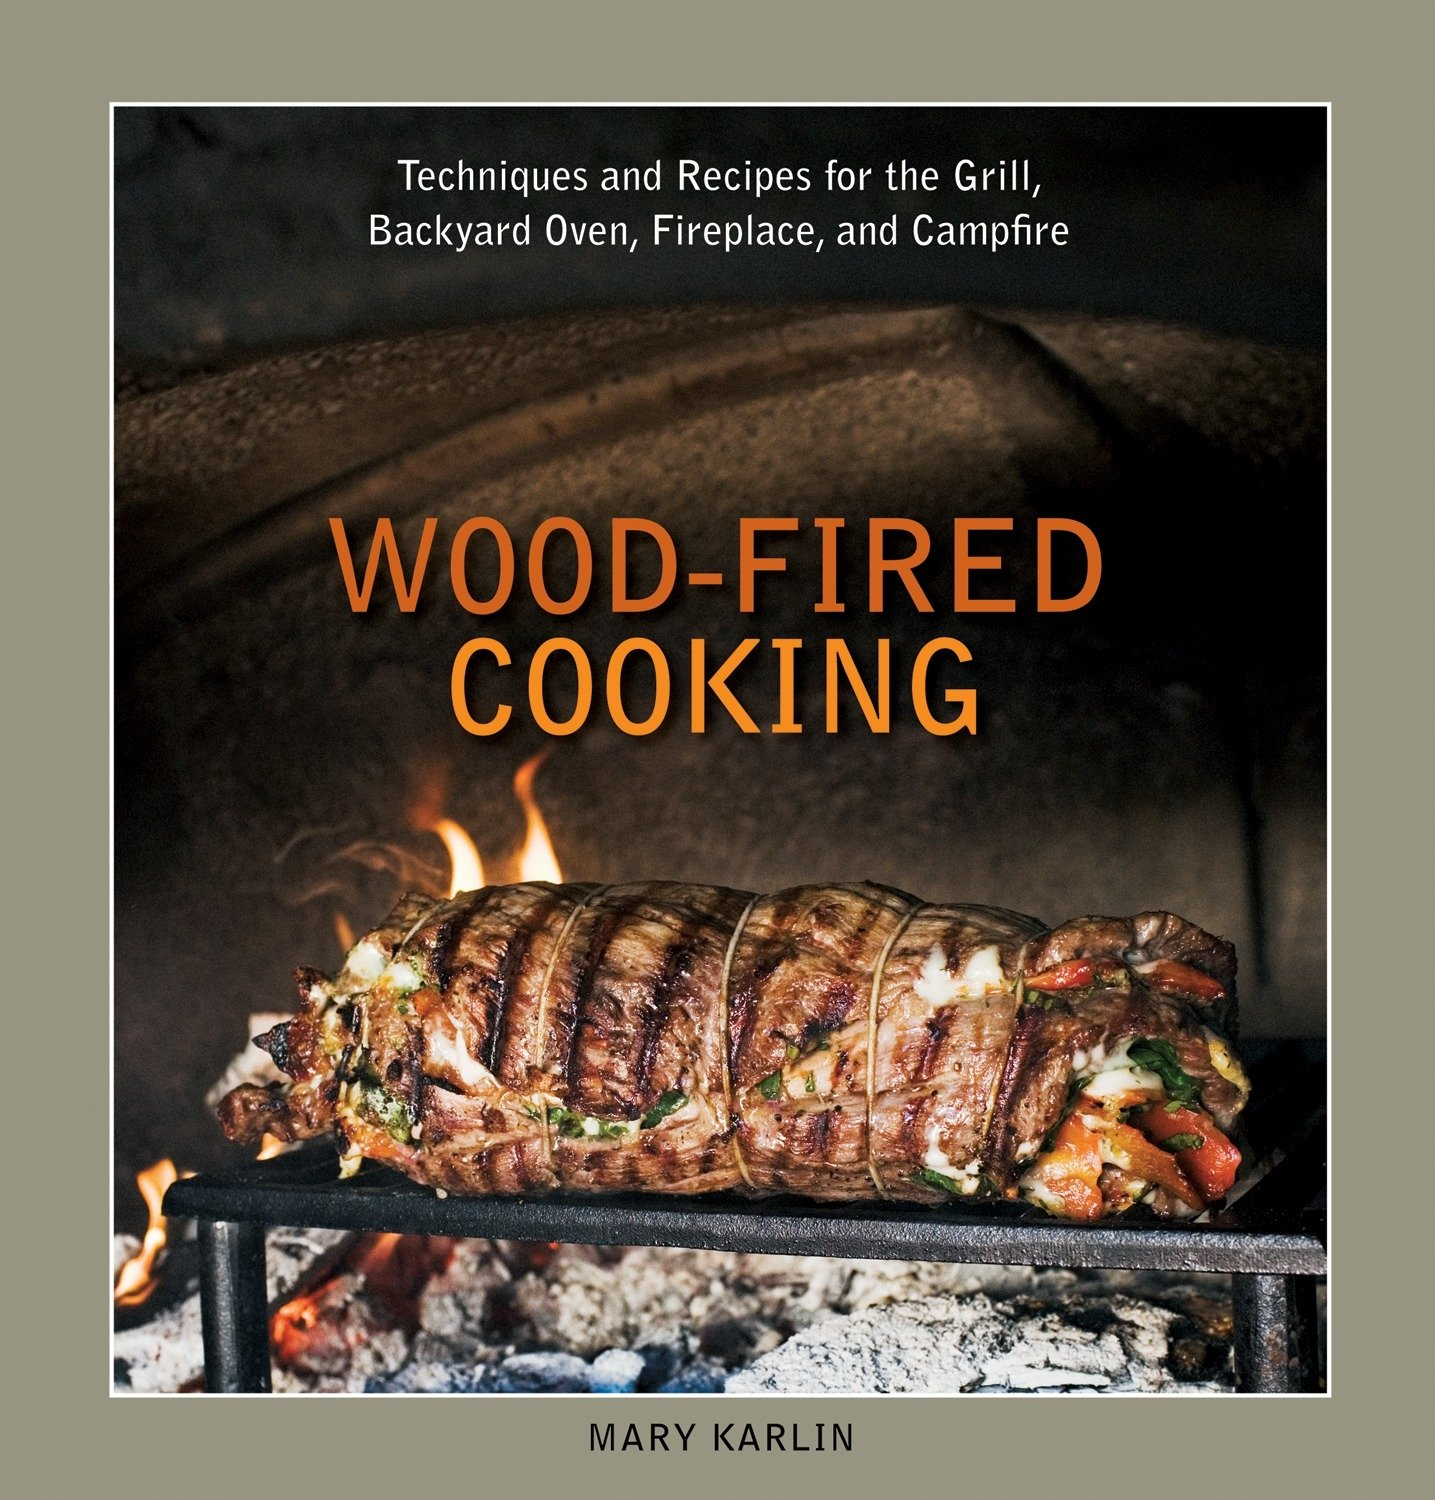 wood fired cooking techniques and recipes for the grill backyard